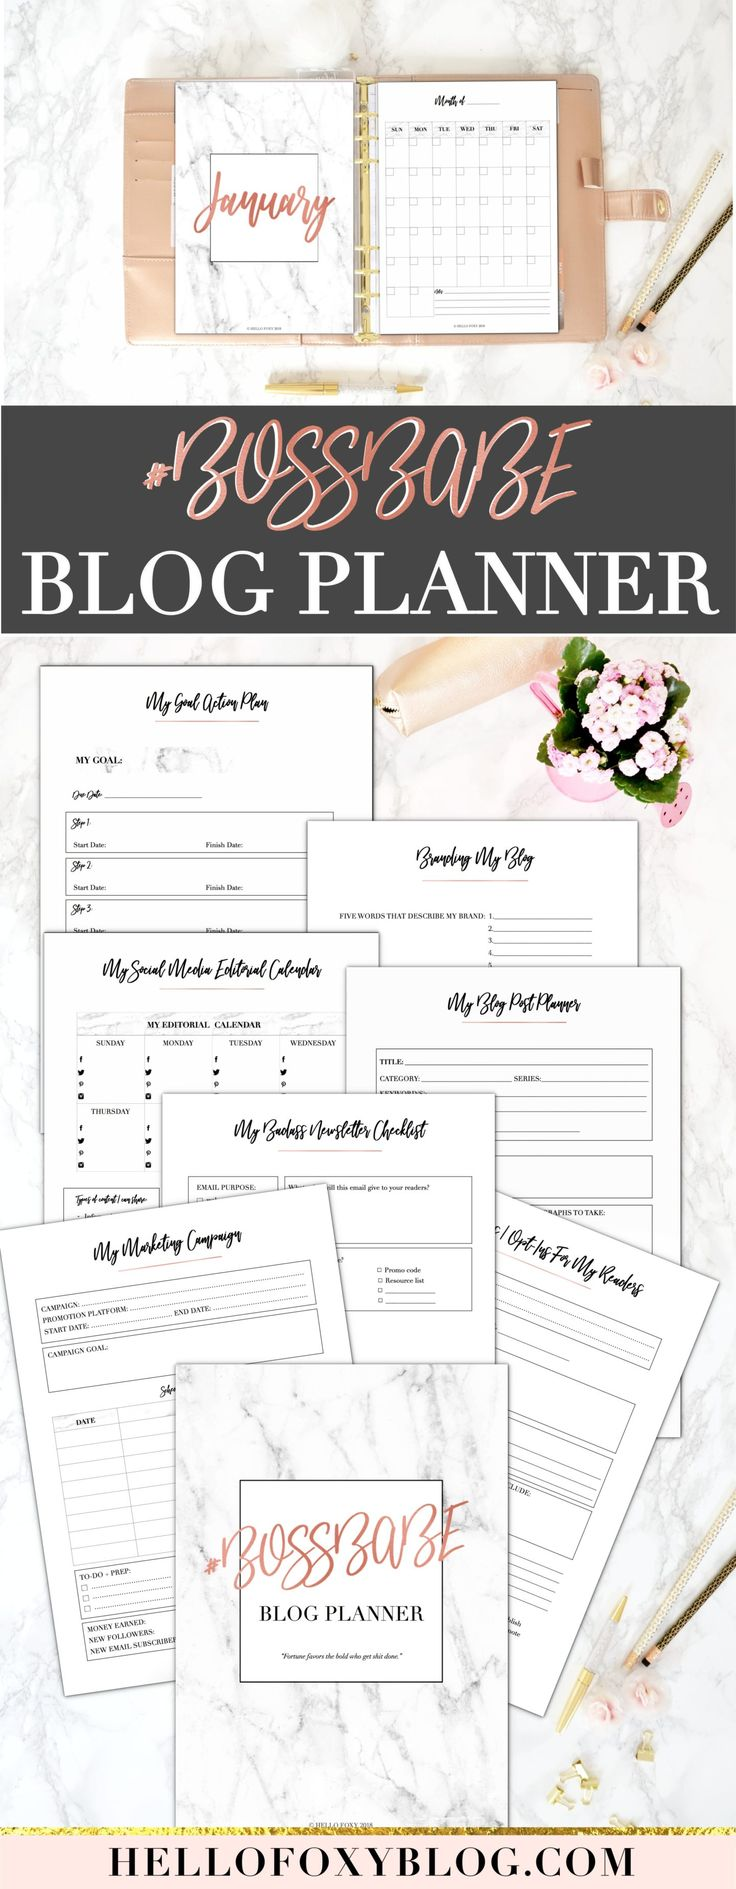 Chic, Badass, Comprehensive and Valuable: those are the four words that resonated through my mind the whole time I was creating the #BOSSBABE Blog Planner. It's more than a simple planner actually, it's a WHOLE TOOLKIT that contains everything you need to accomplish your goals. Its numerous worksheets will help you create awesome content for your blog, social media, email newsletters, and more.